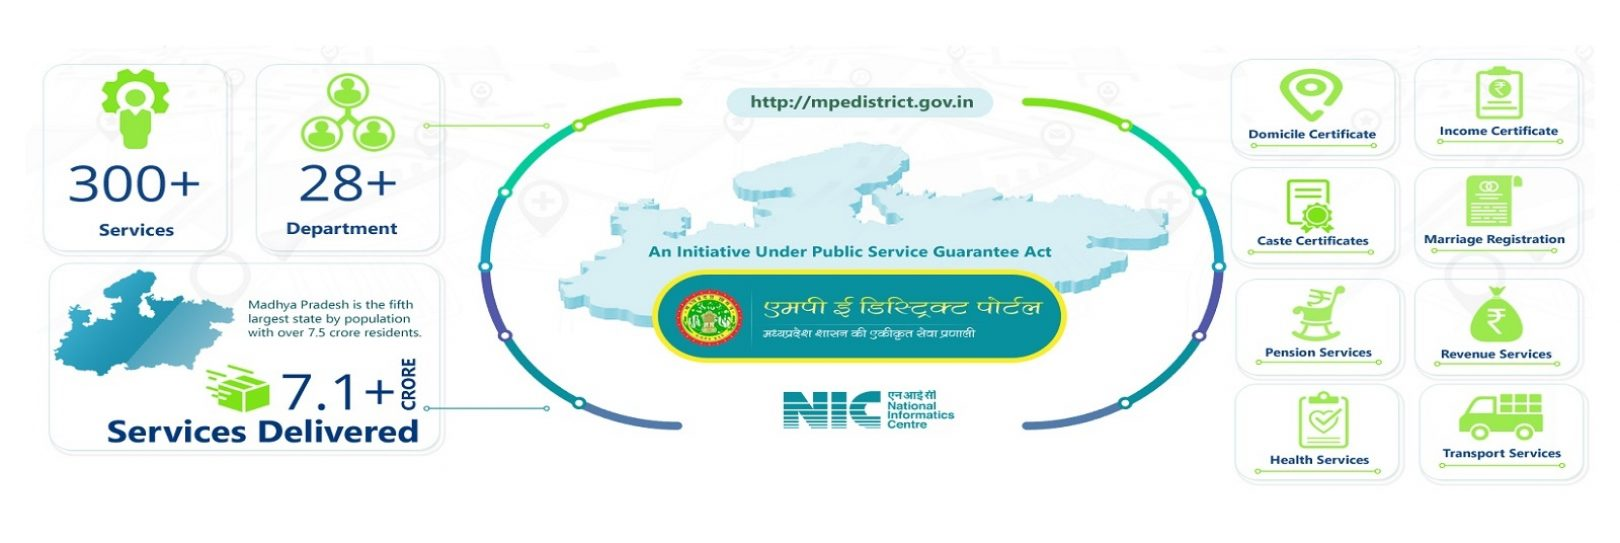 MP E-District Portal